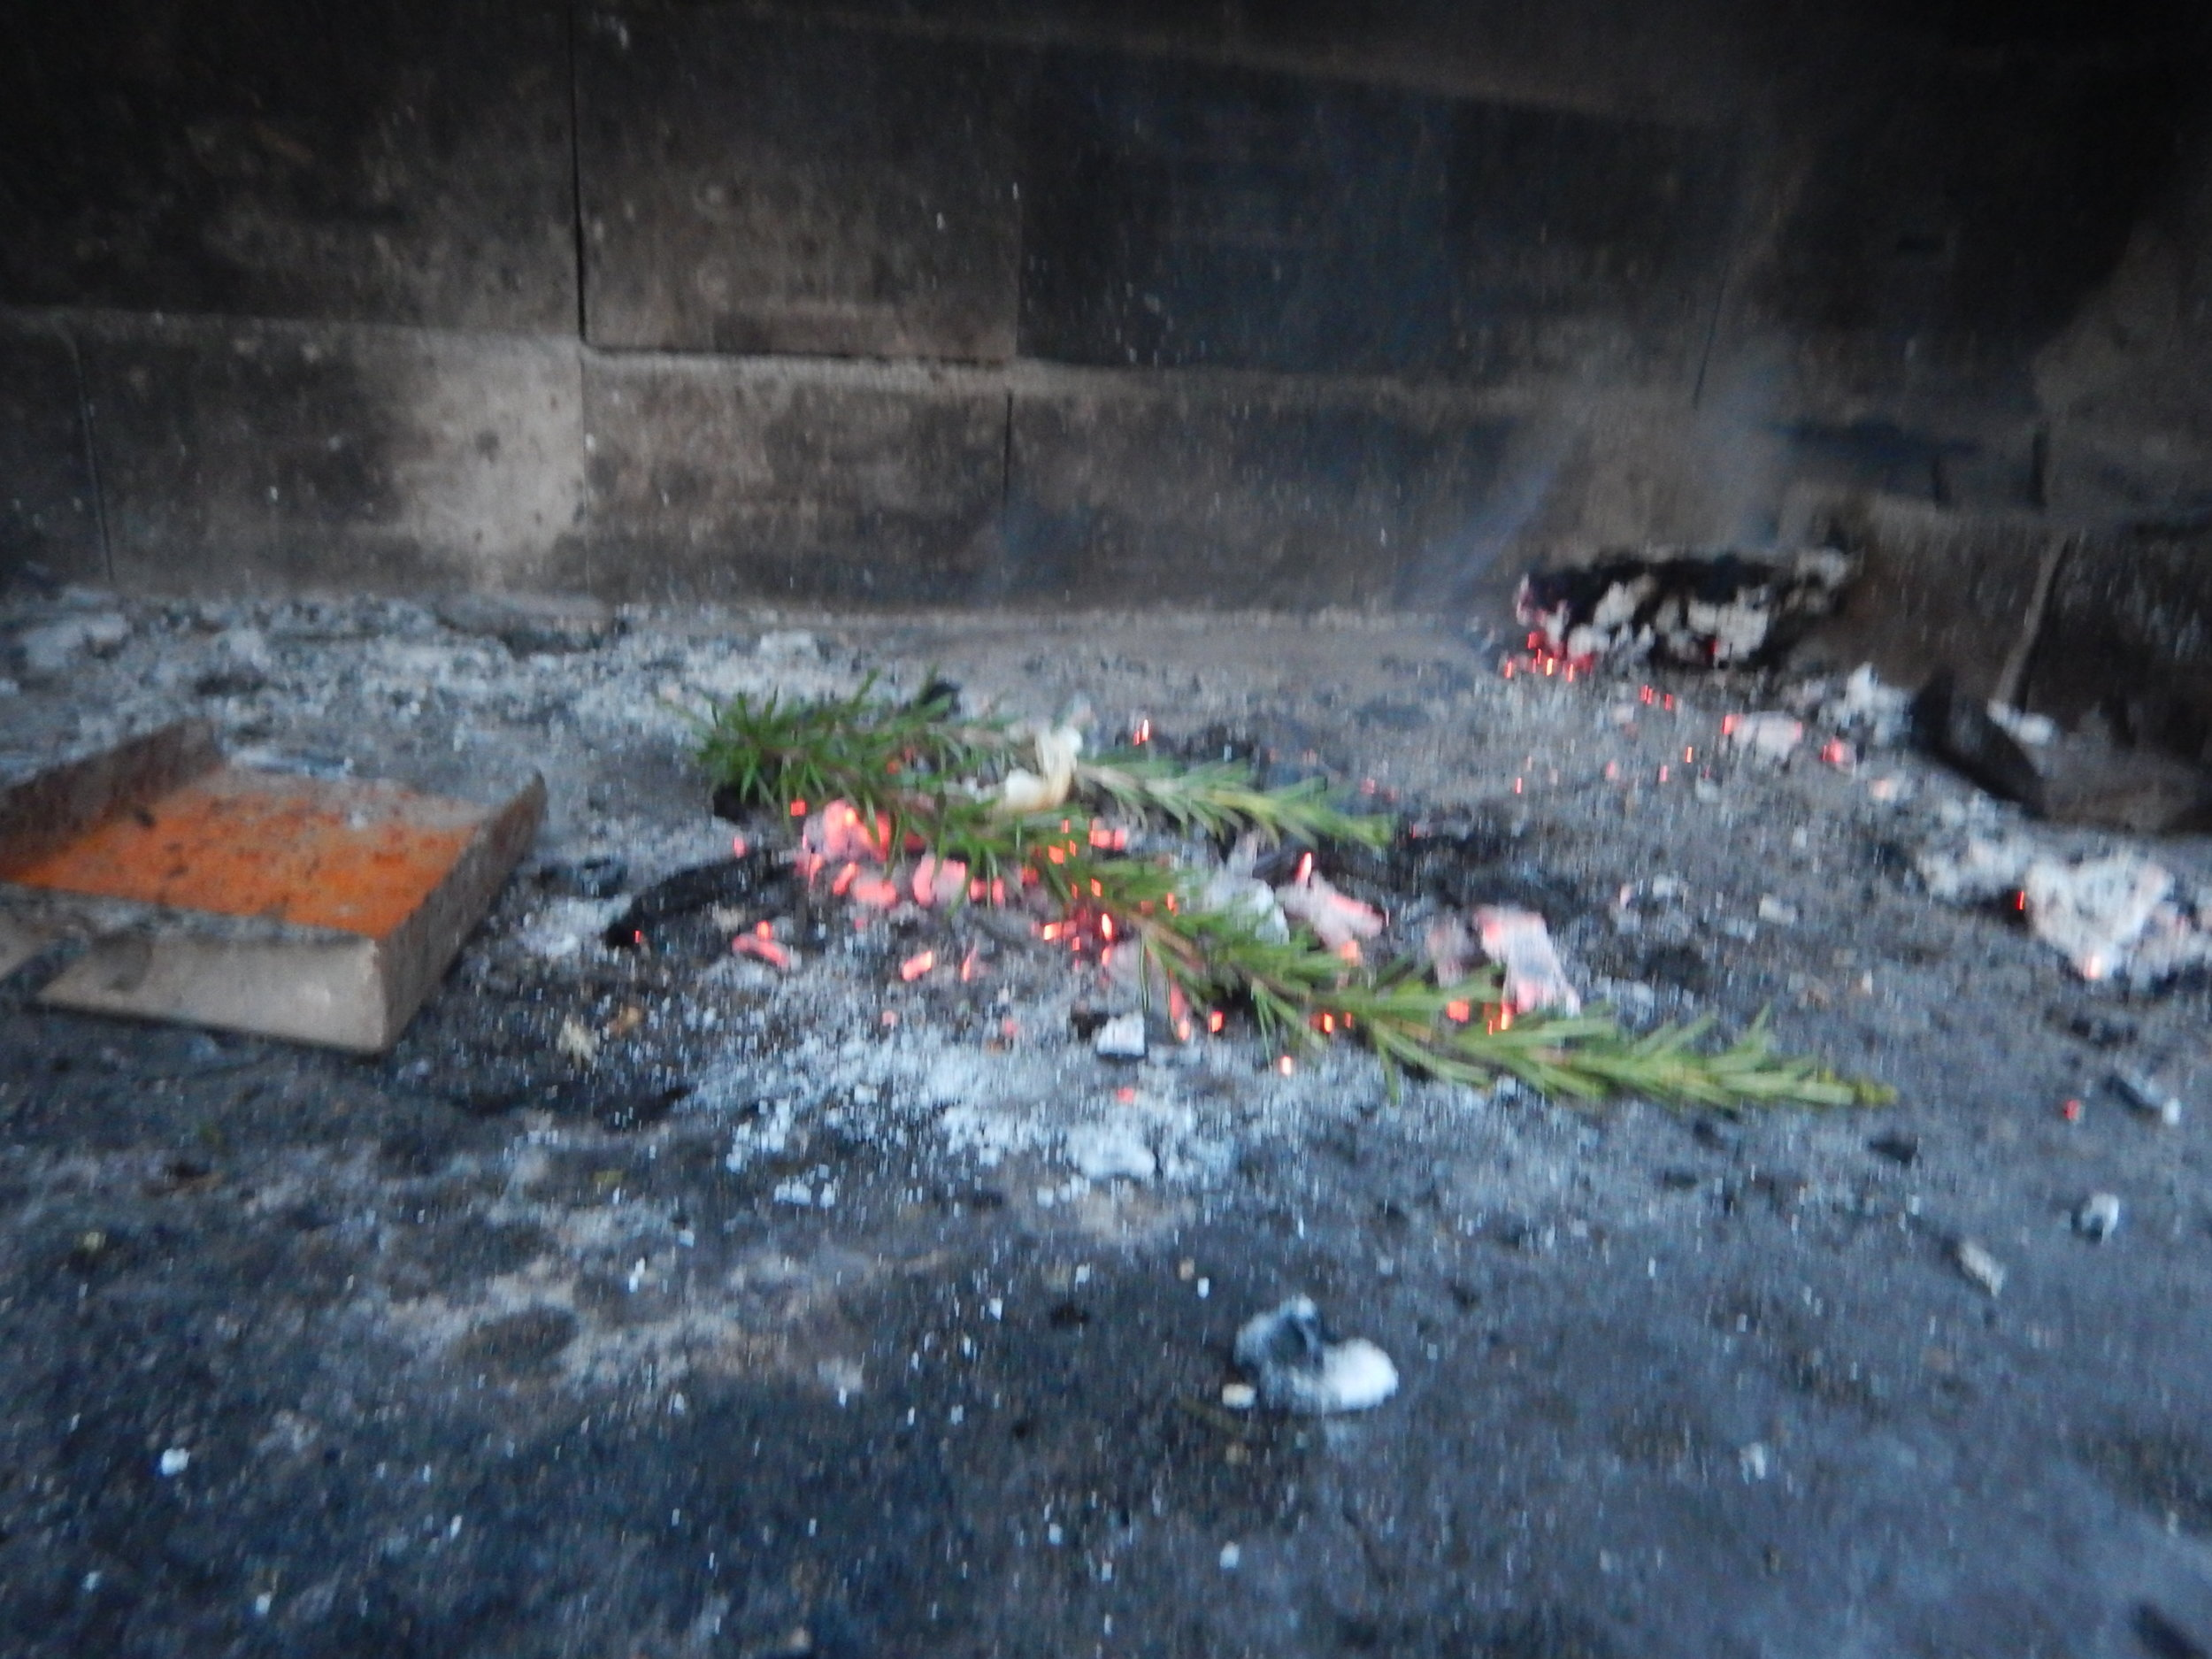 and when I got back to my guest house the family next door had just finished cooking their dinner and always finish off by roasting some rosemary to freshen the small of their cook house.